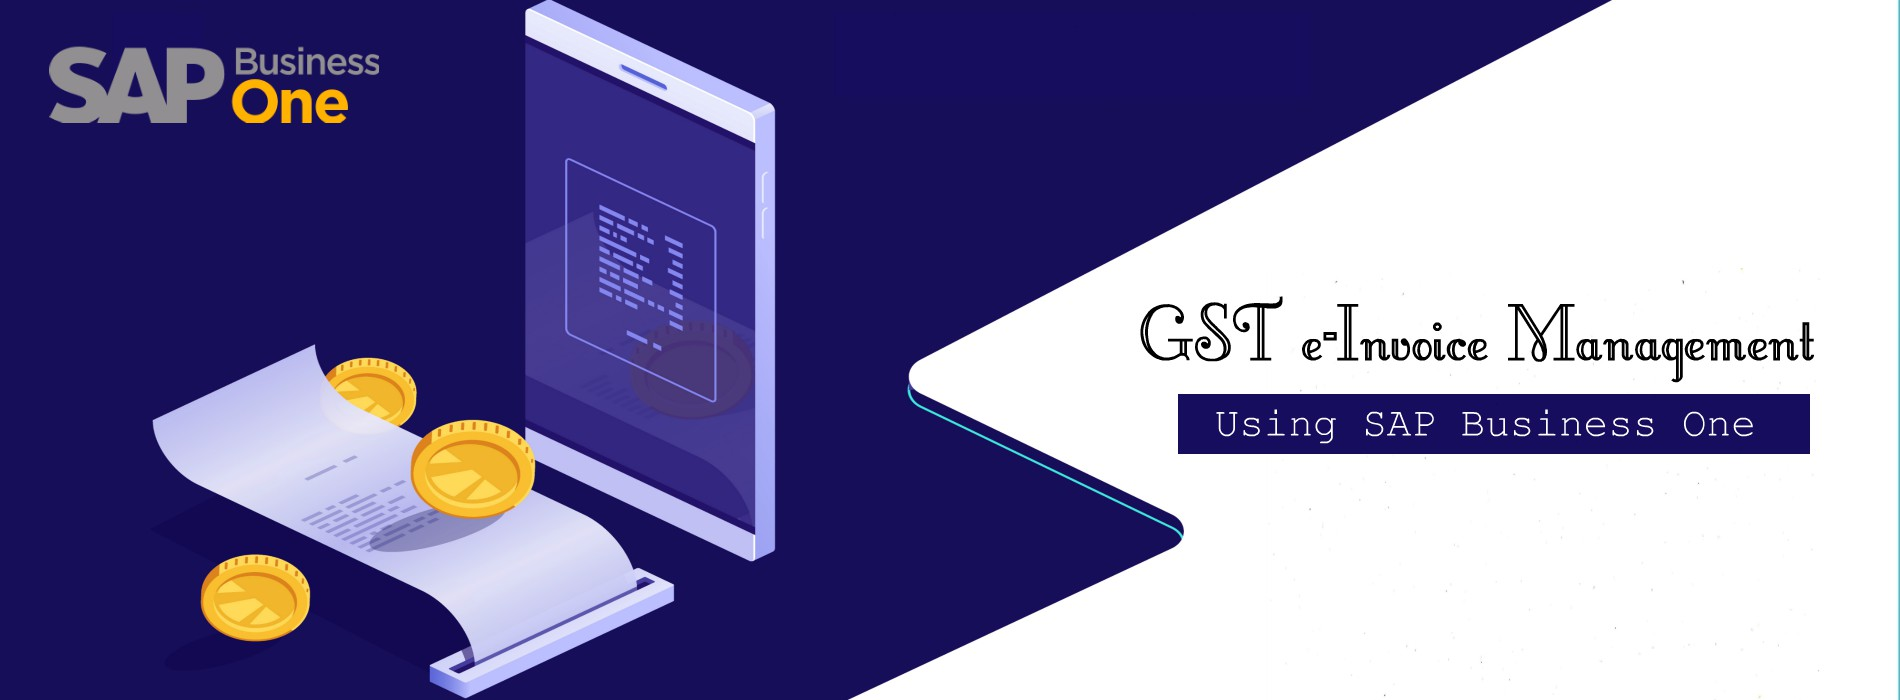 GST e-Invoice Management of your business using SAP B1 ERP